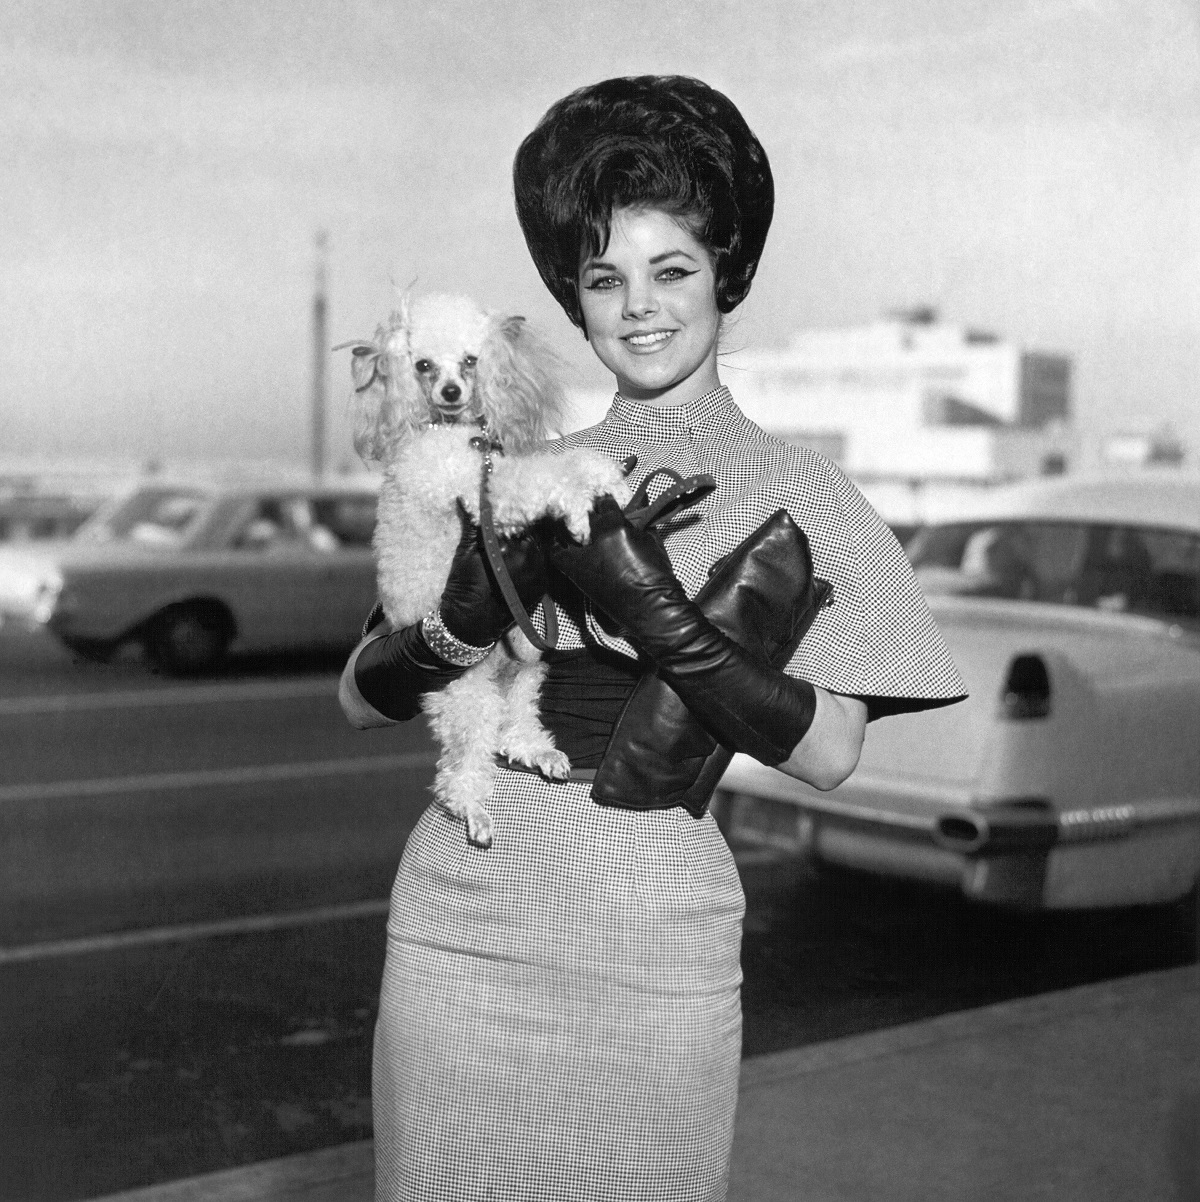 Priscilla Beaulieu in Jan. 1963 with her new dog, Honey